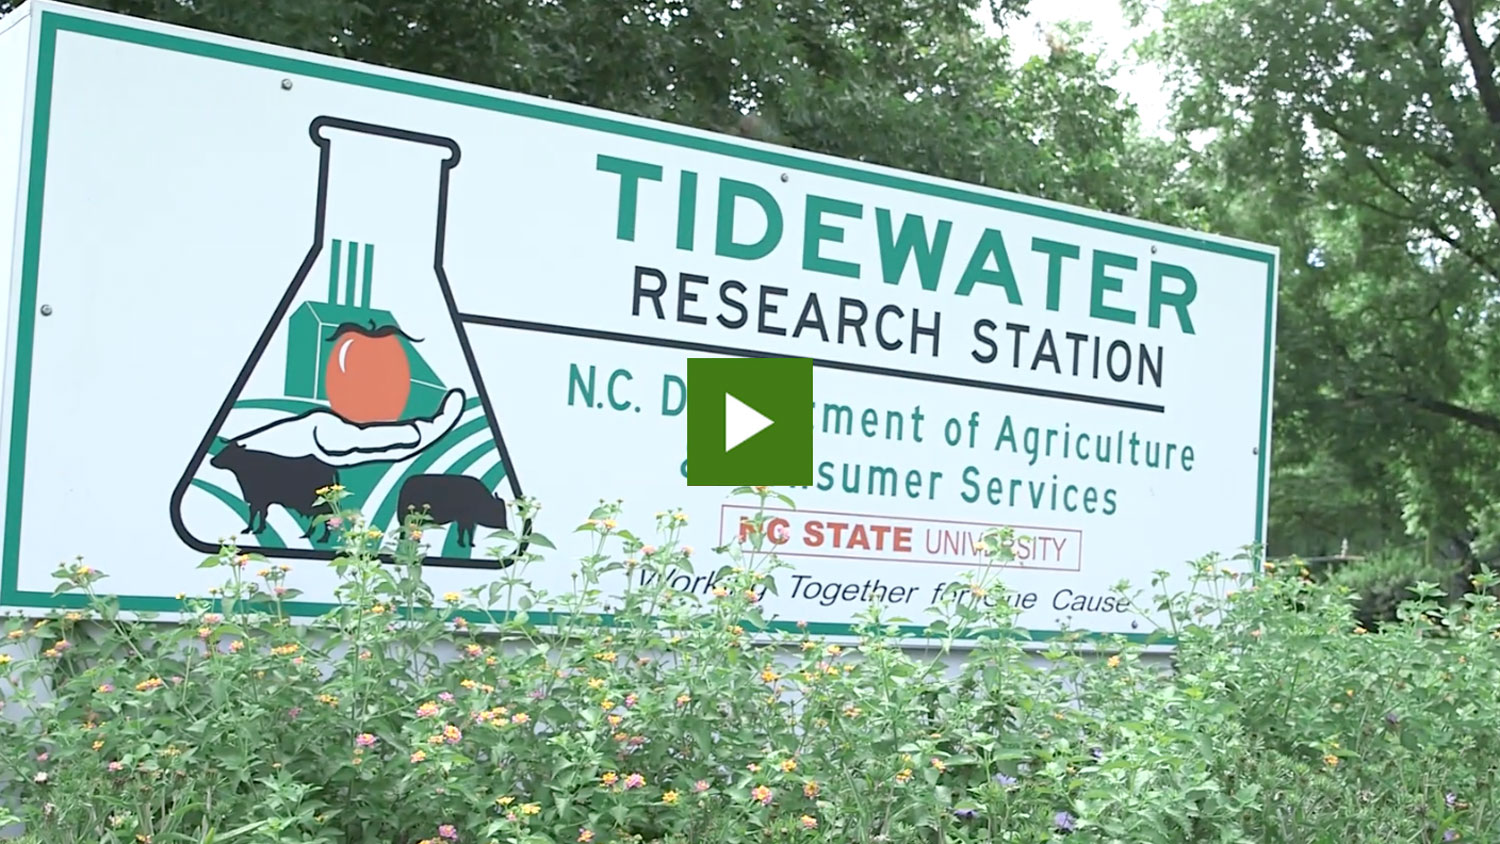 Sign for the NC State Tidewater Research Station